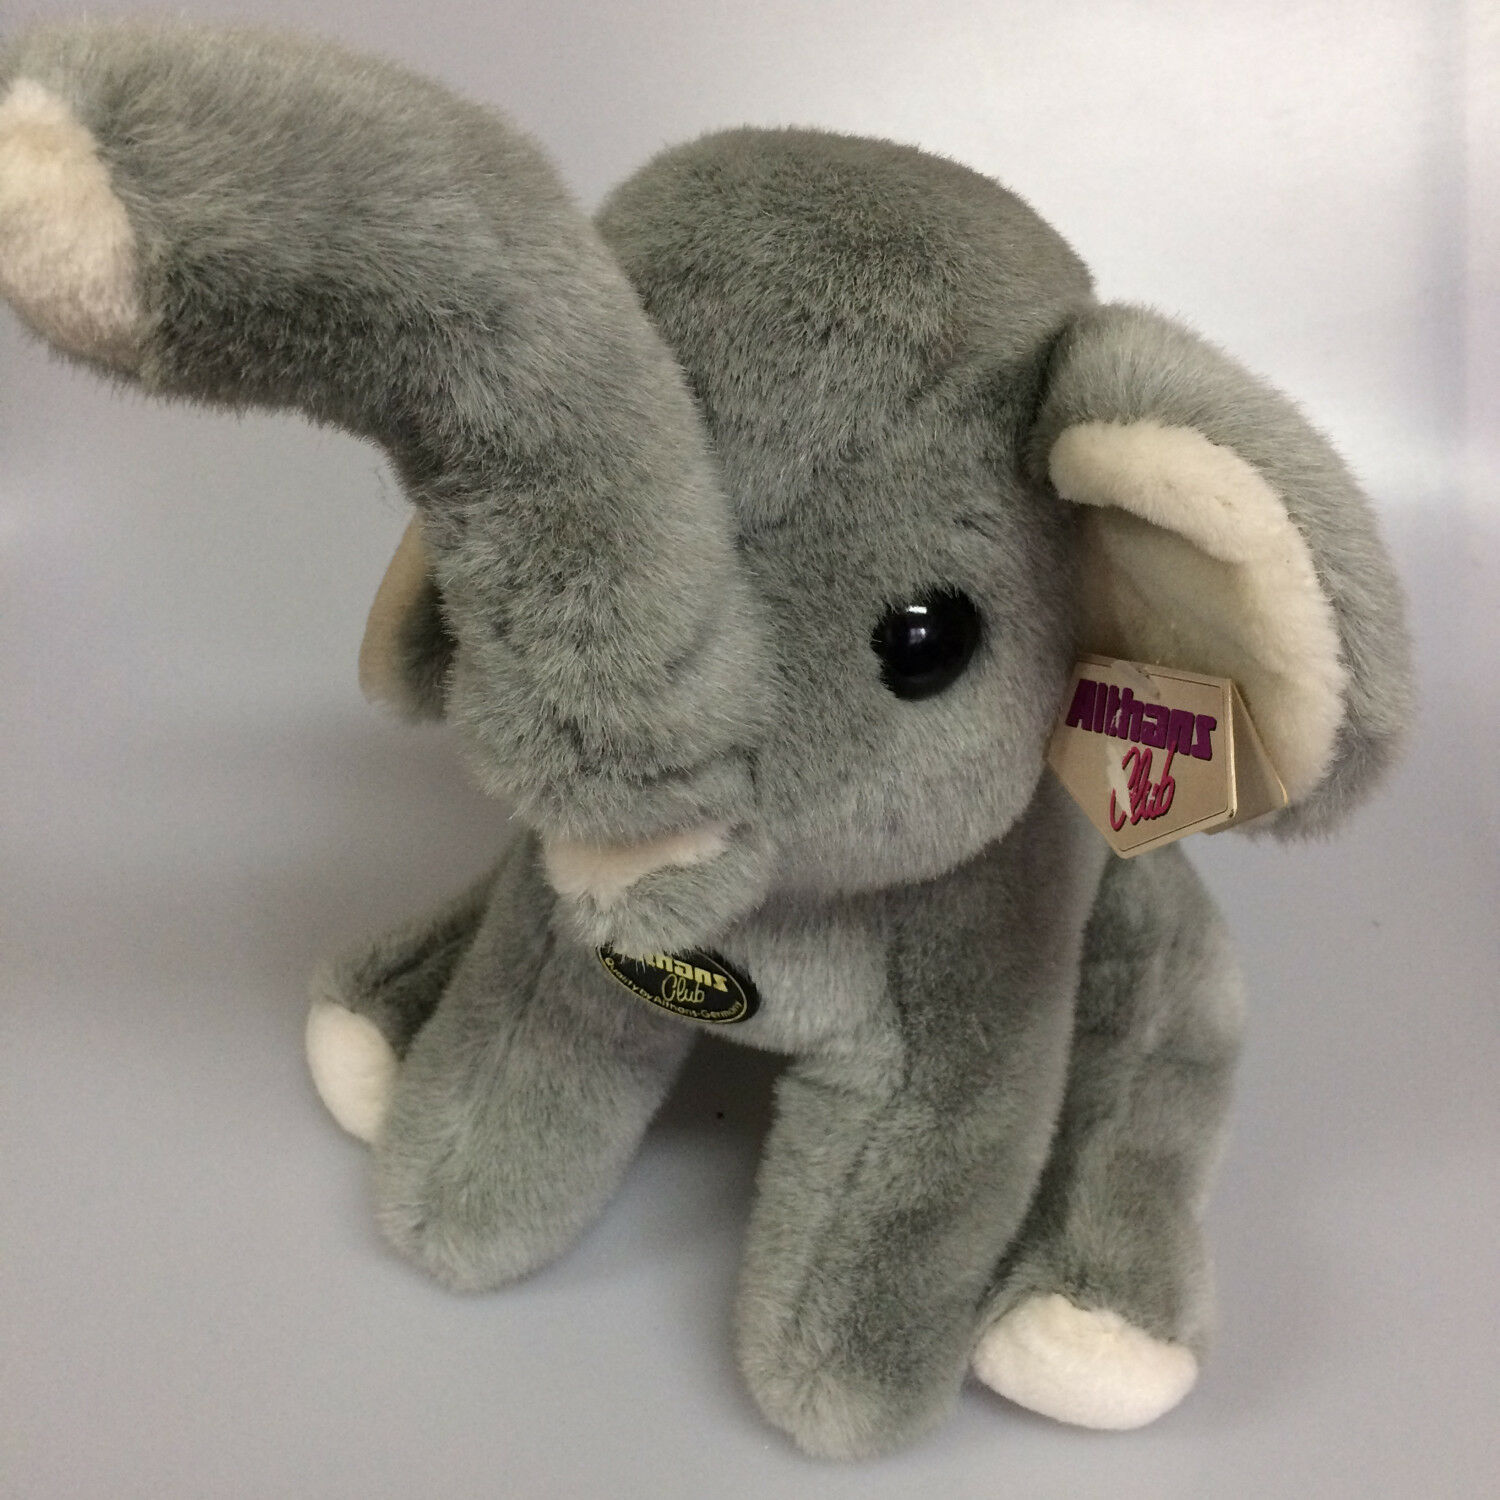 Stuffed Toy Elephant Sitting 30 cm Althans Club 00620 610023